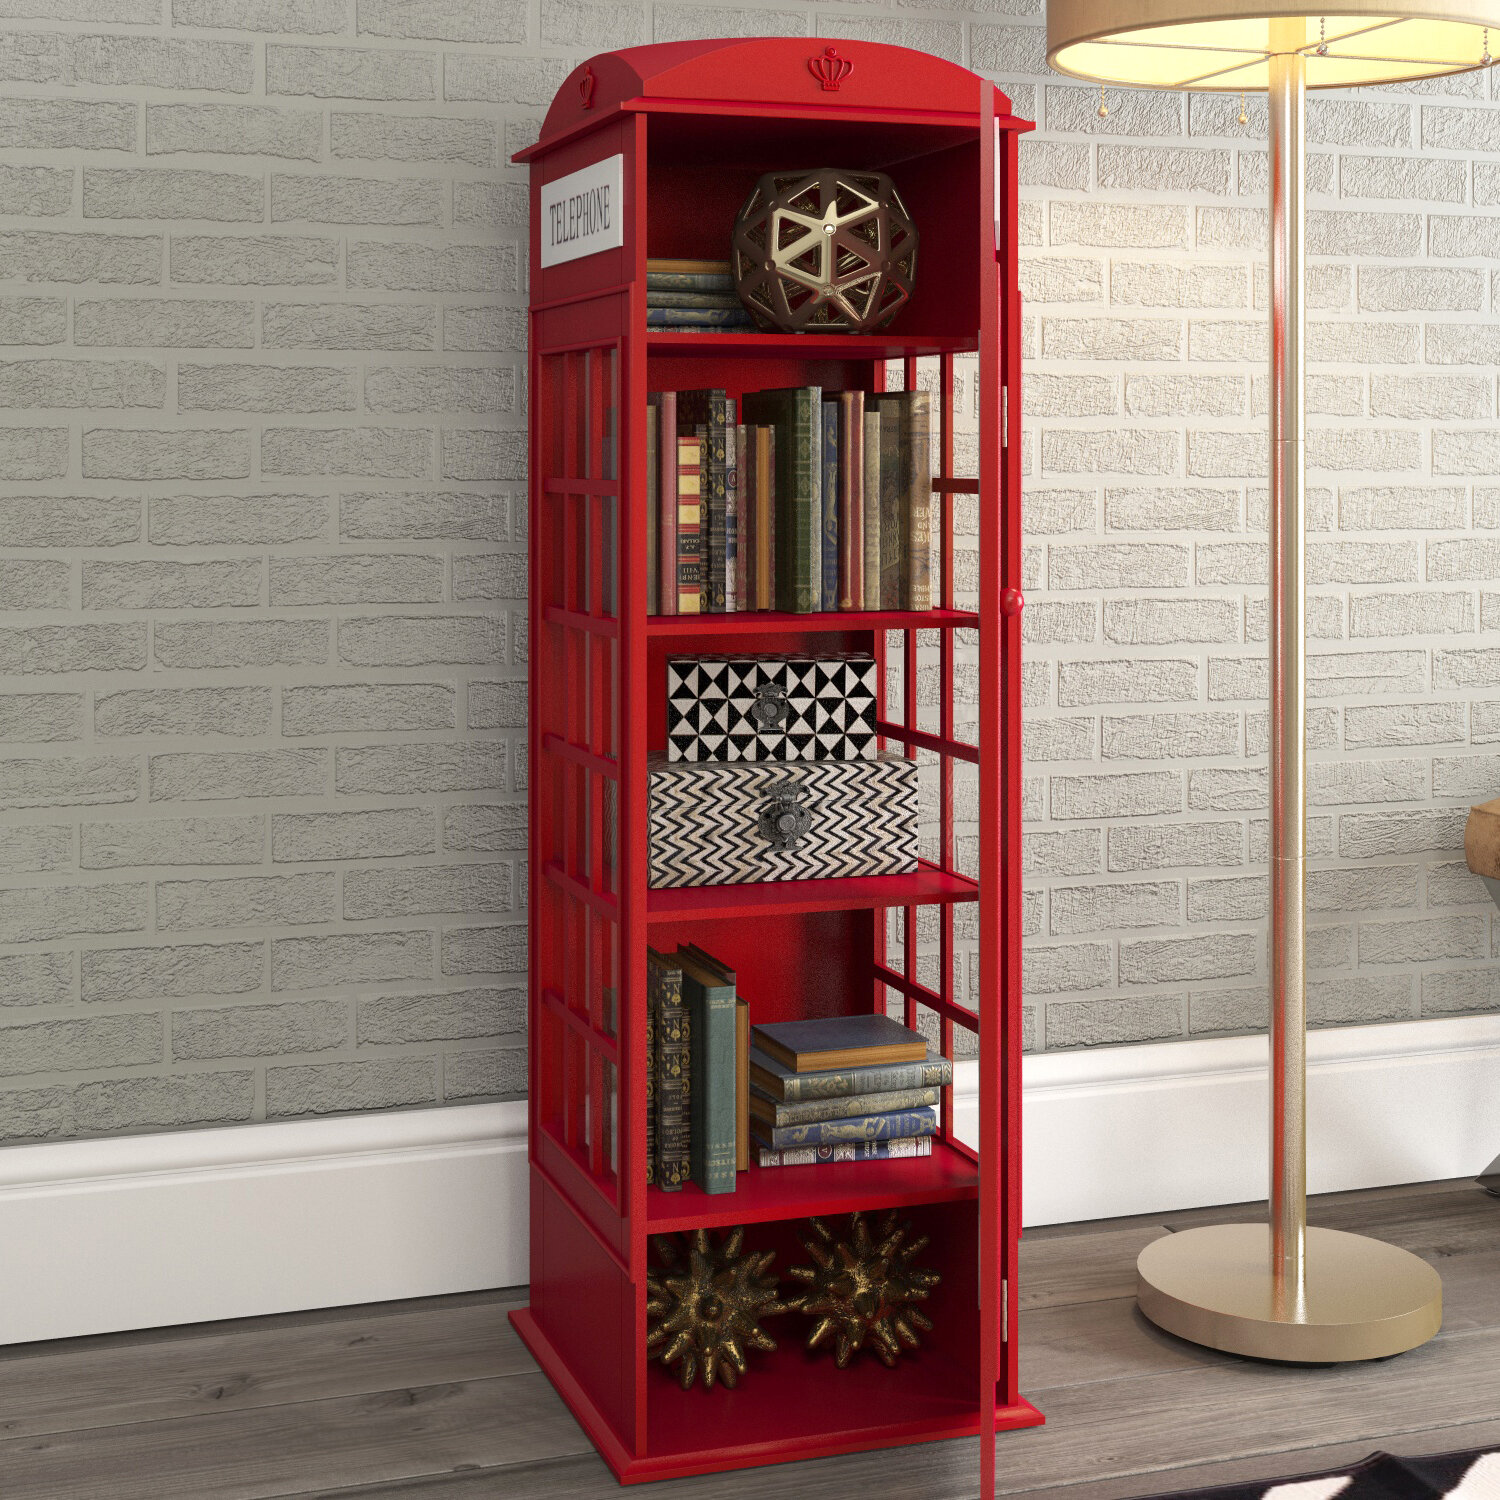 Ordinaire Red Barrel Studio Rodriques Phone Booth Storage Accent Cabinet U0026 Reviews |  Wayfair